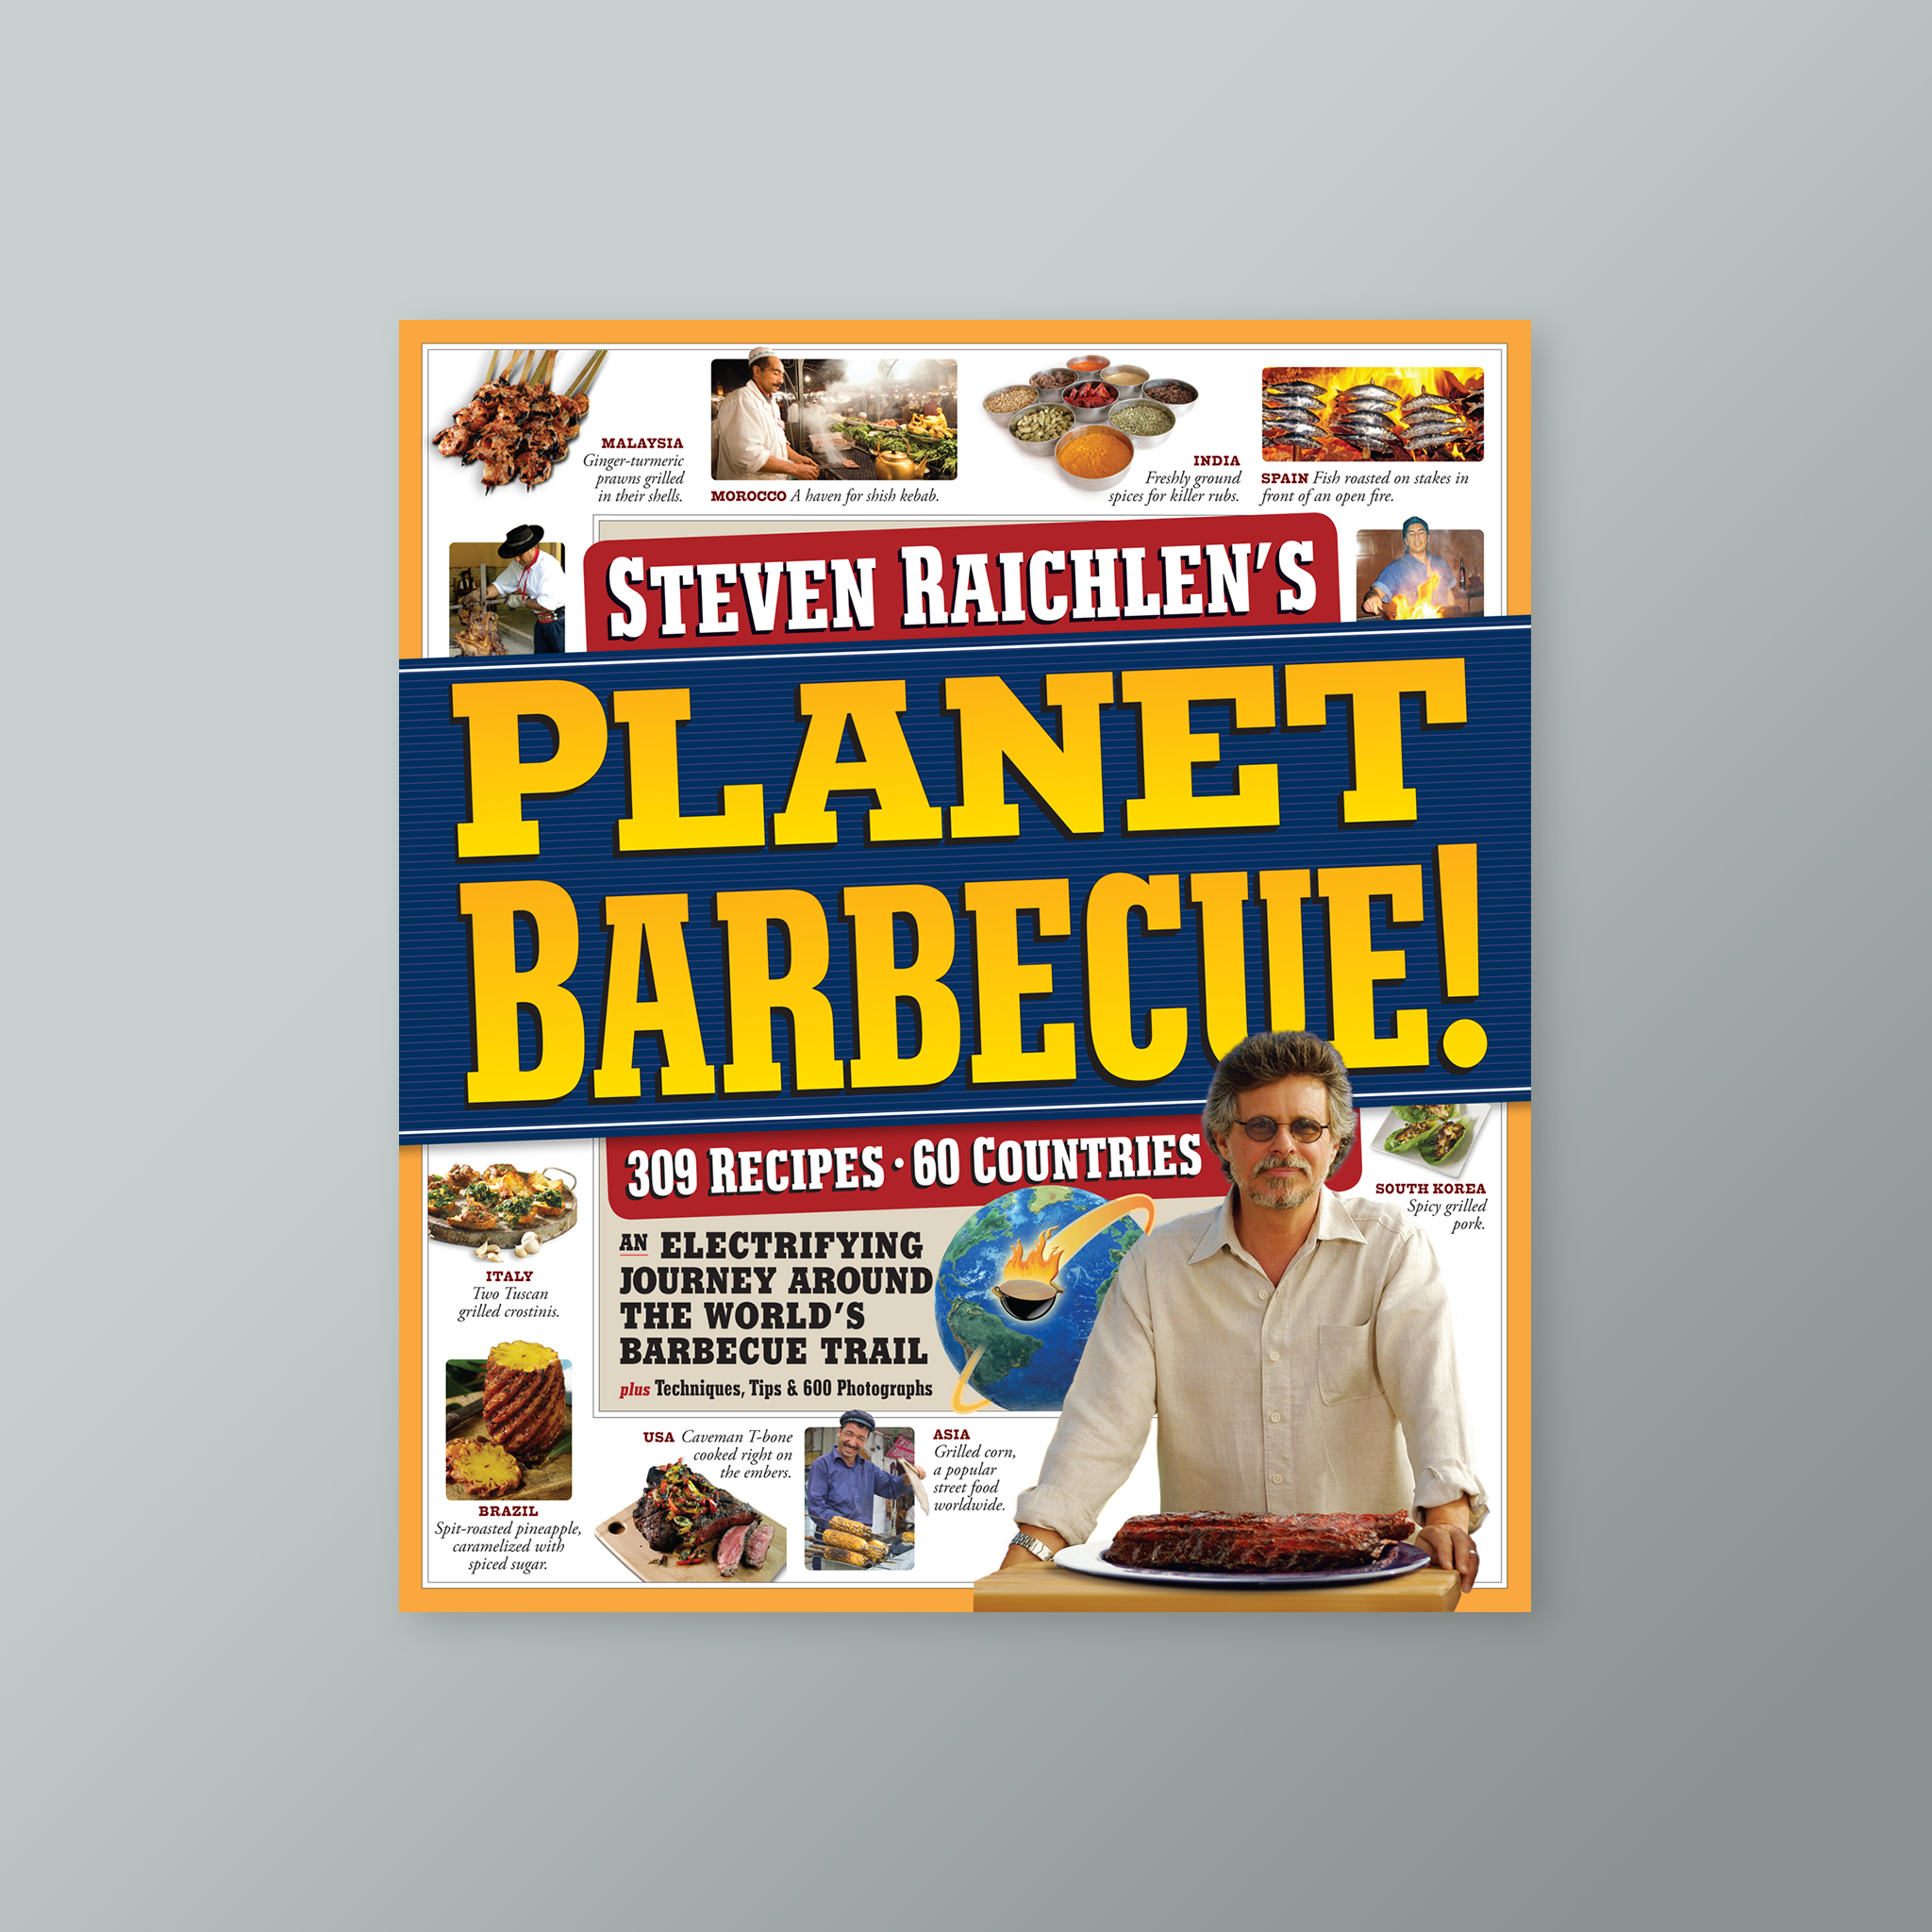 Planet - reprise of themes in BBQ Bible - exploration of global grilling. But much more global, much more in depth.  25 countries - BBQ bible  60 countries visited for planet barbecue